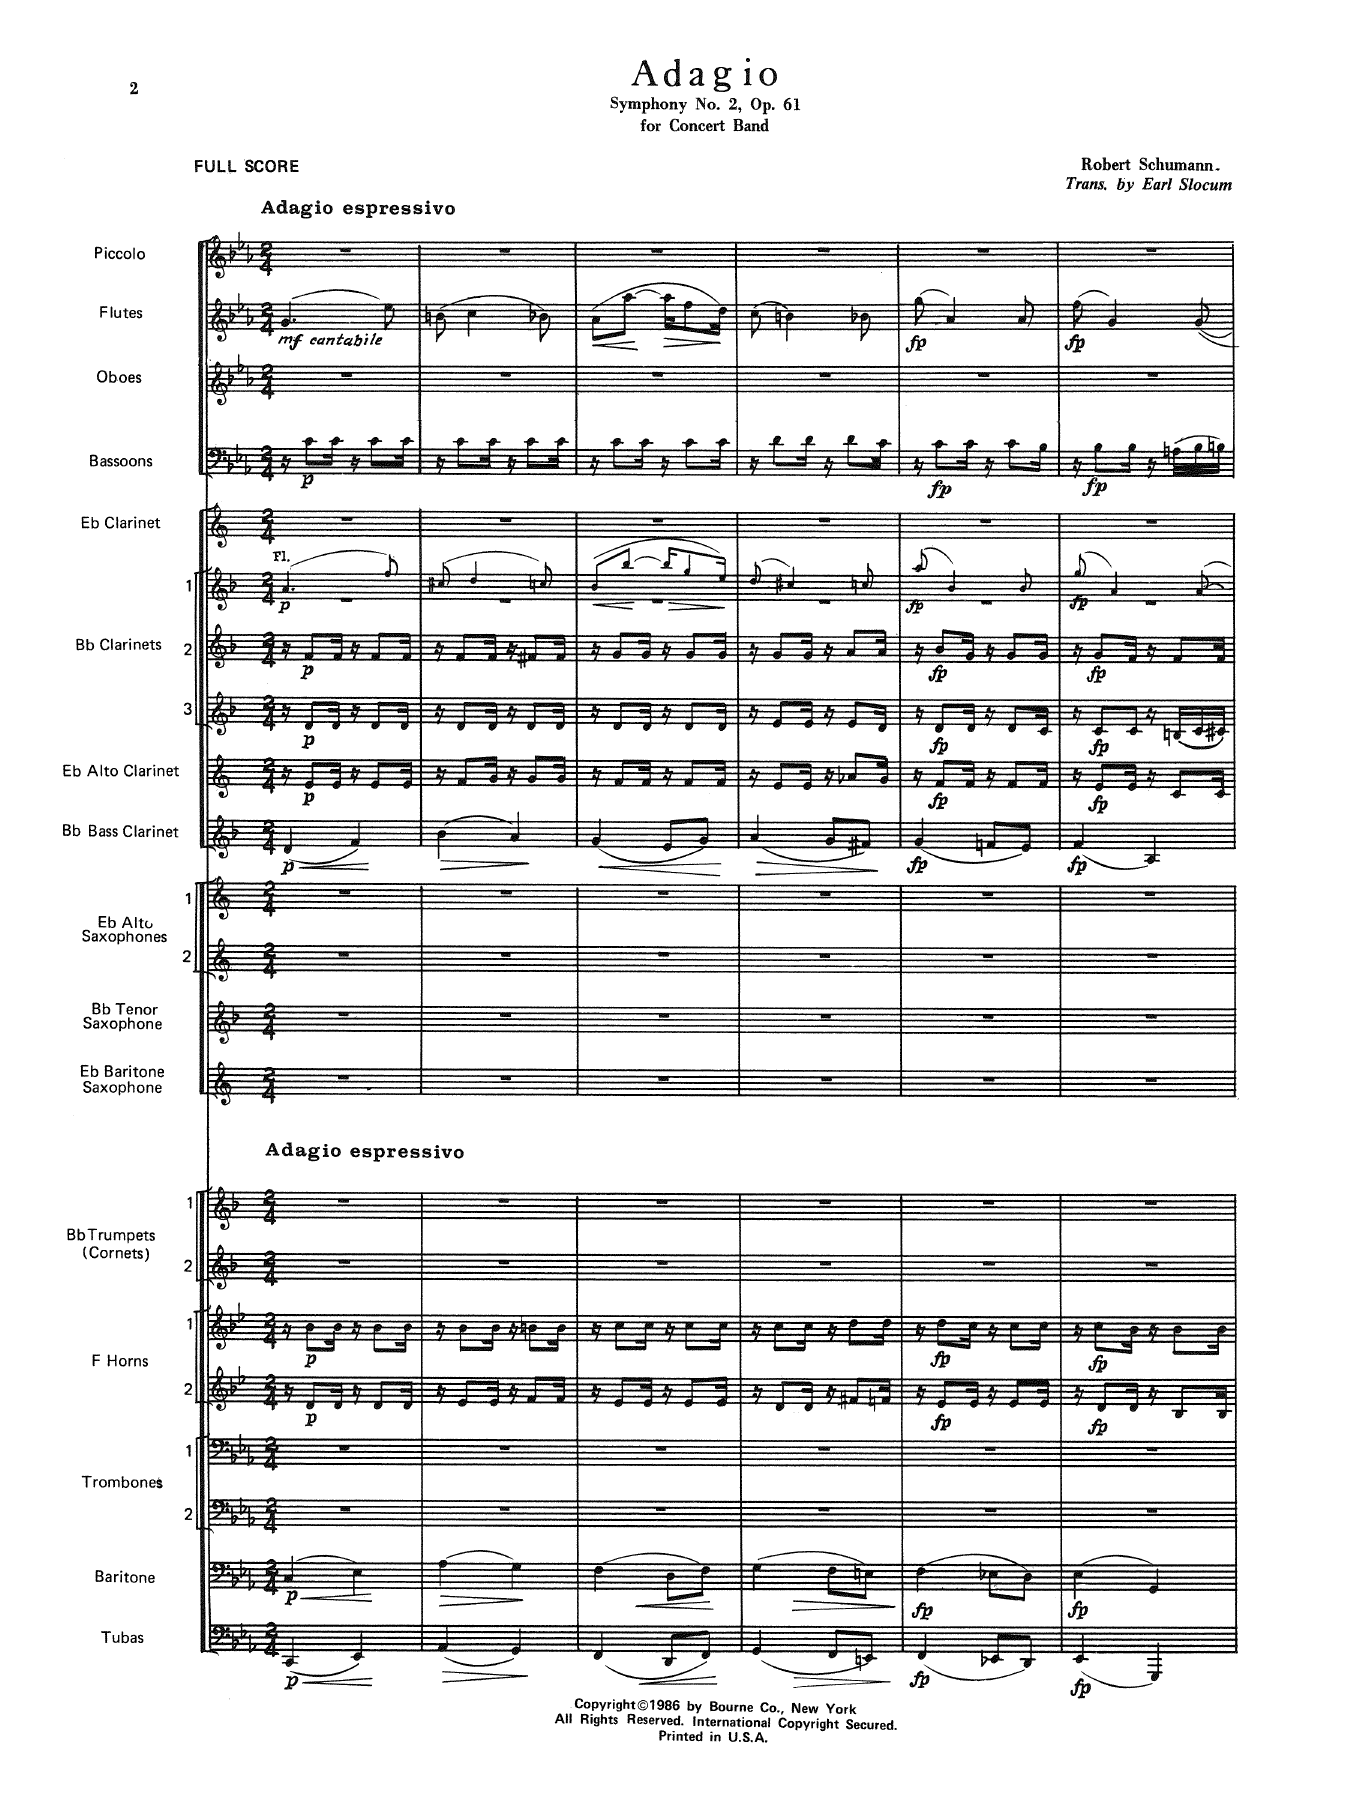 Adagio Symphony No. 2, Op. 61 (COMPLETE) sheet music for concert band by Robert Schumann and Earl Slocum. Score Image Preview.